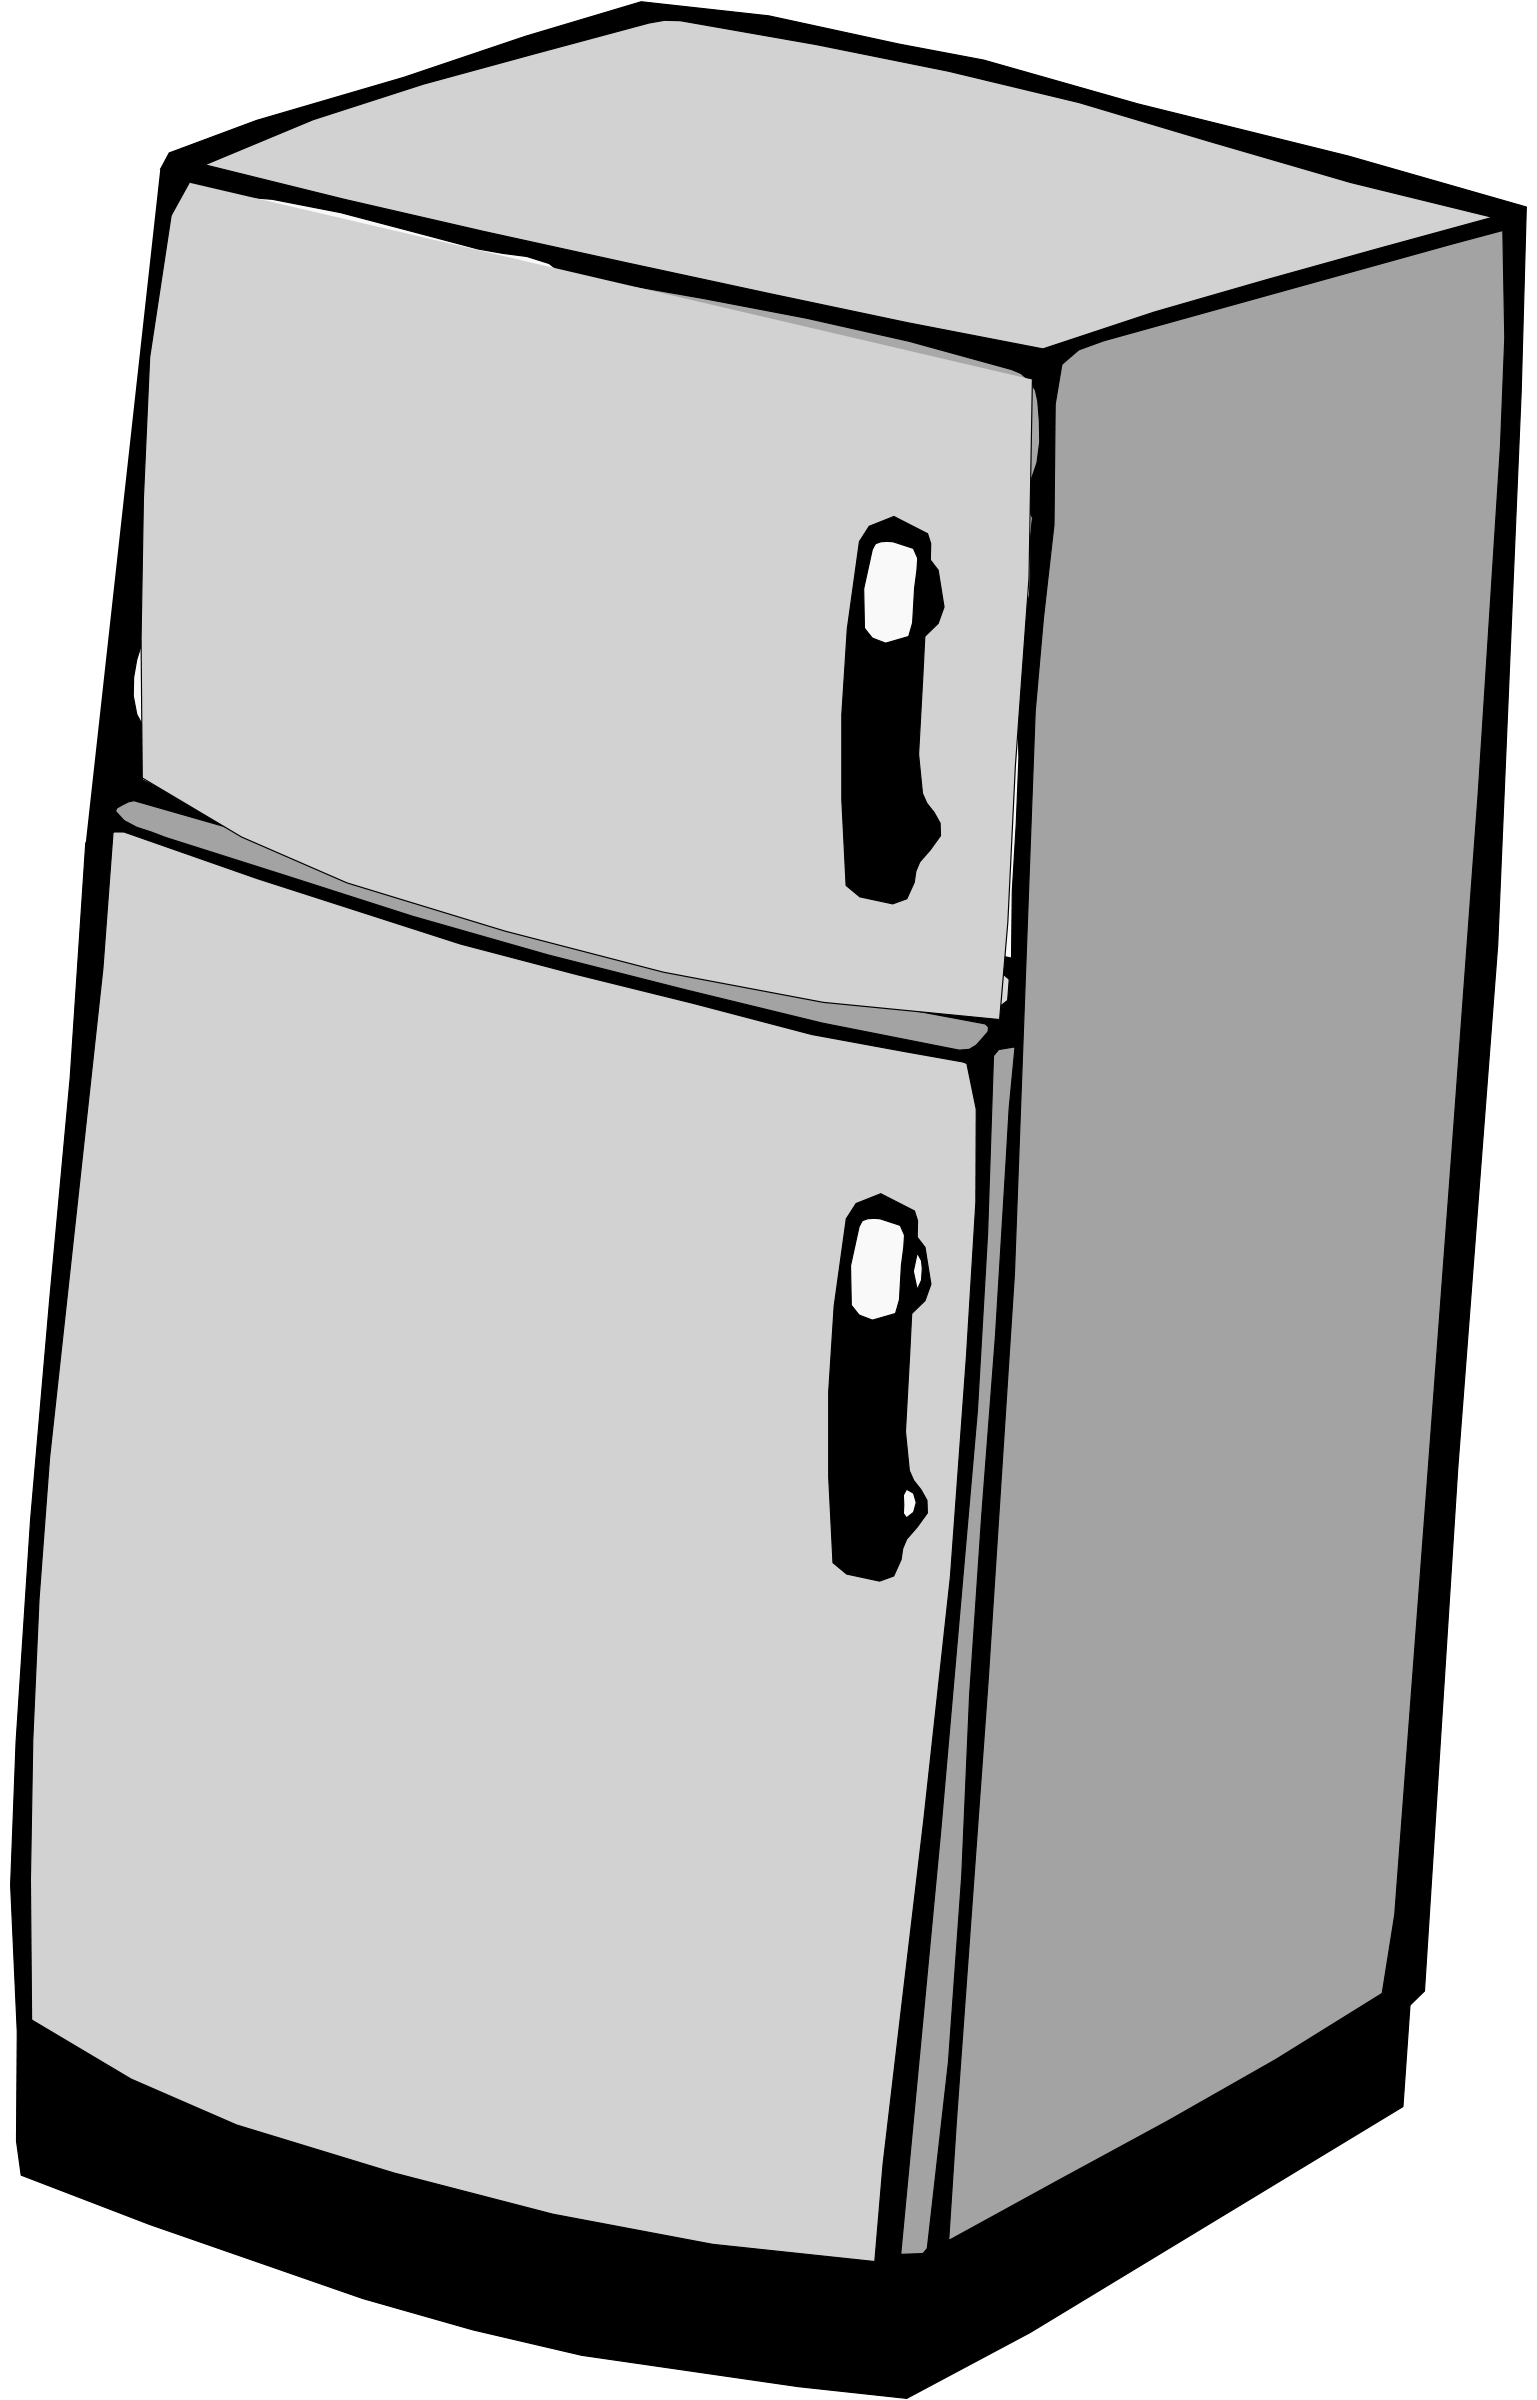 Images For Full Refrigerator Clipart.